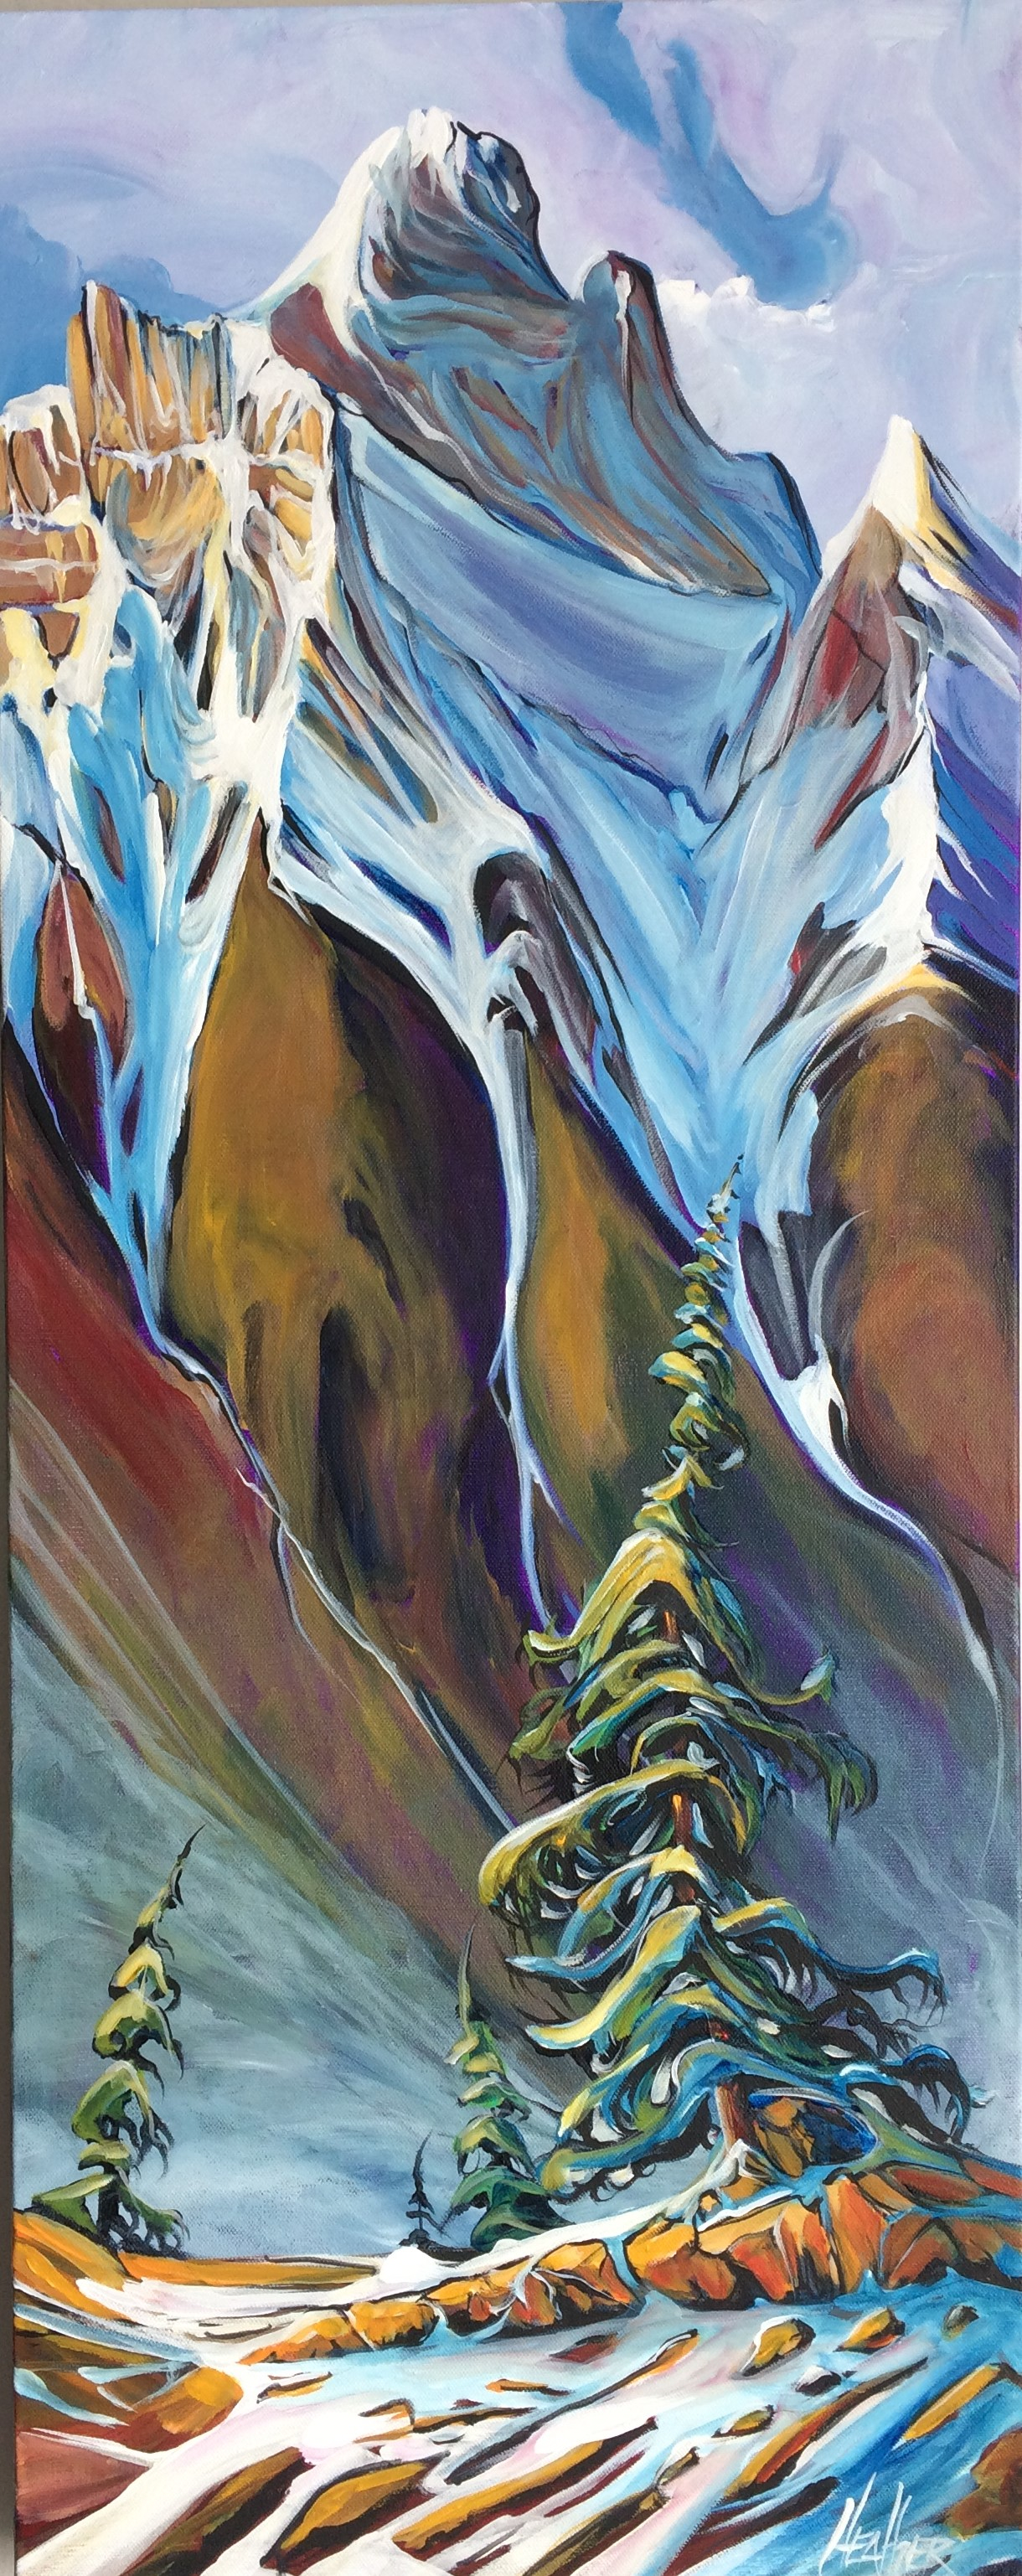 Canmore Ice 16 x 40